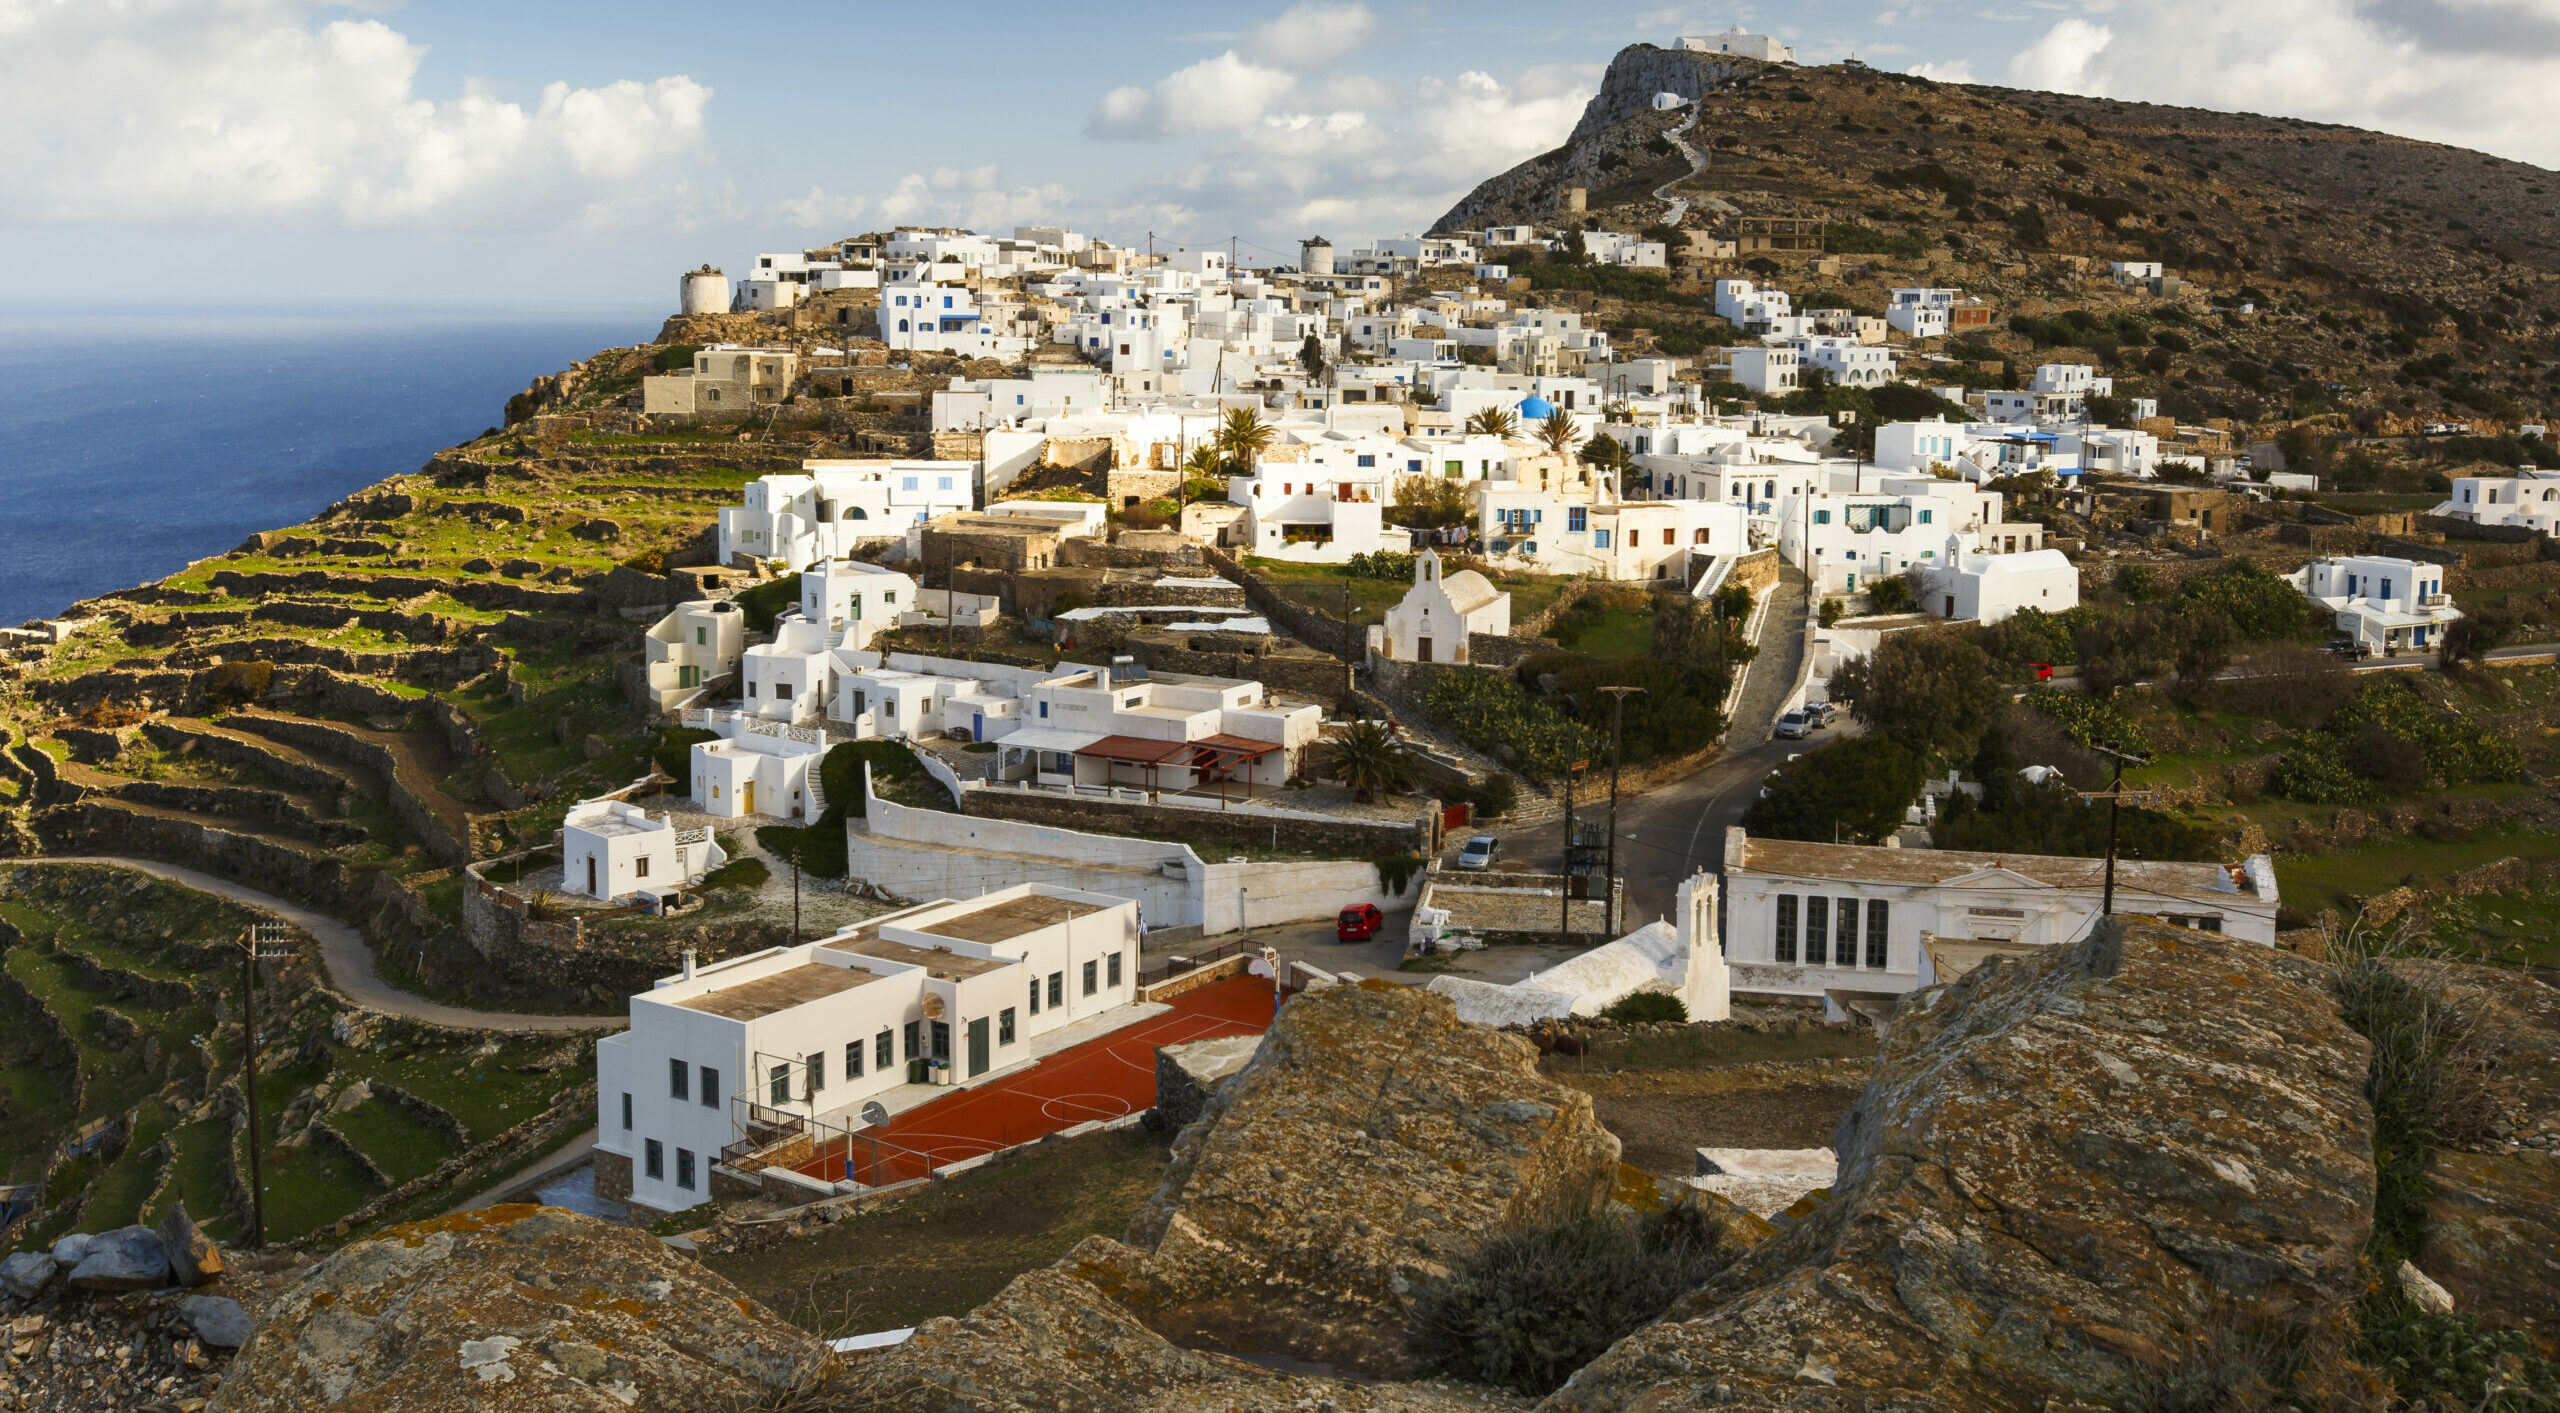 Sikinos: The island of carefree vacations you will come to love